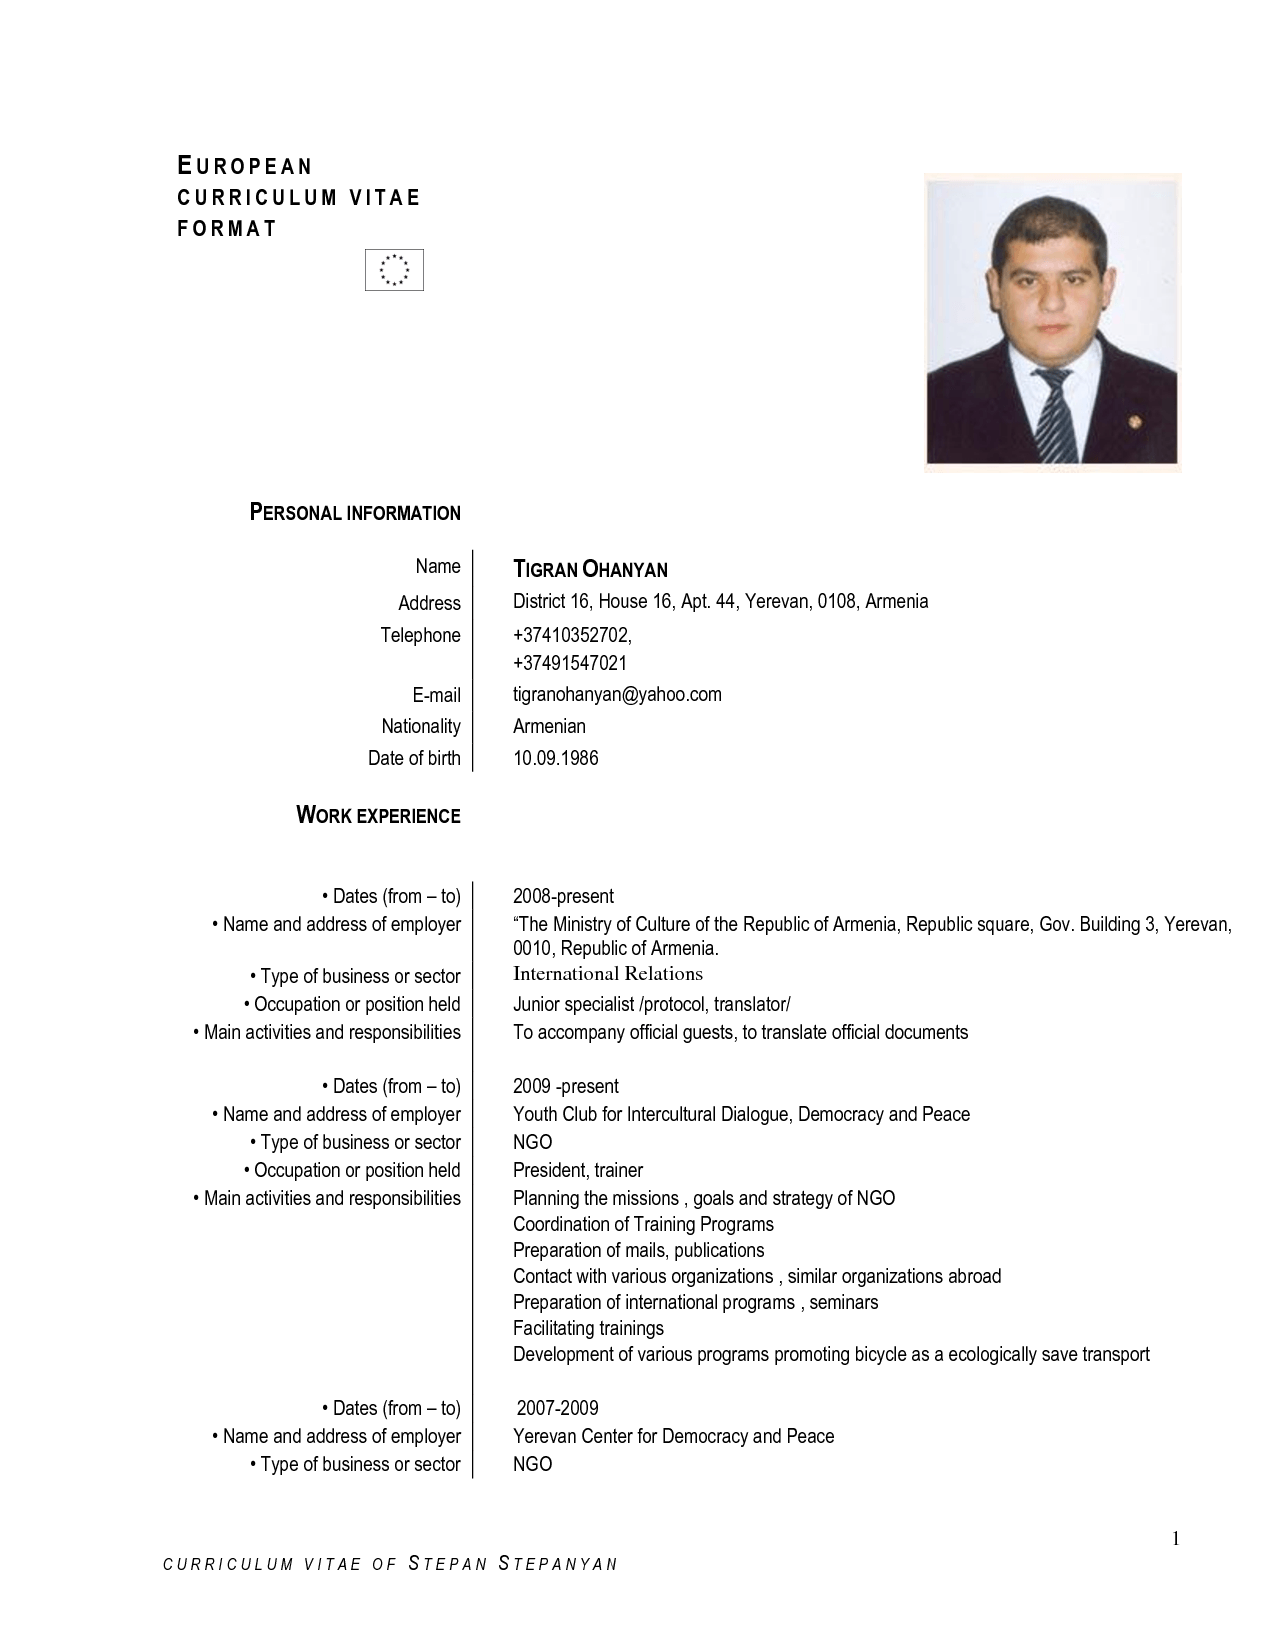 europass cv template english koni polycode co